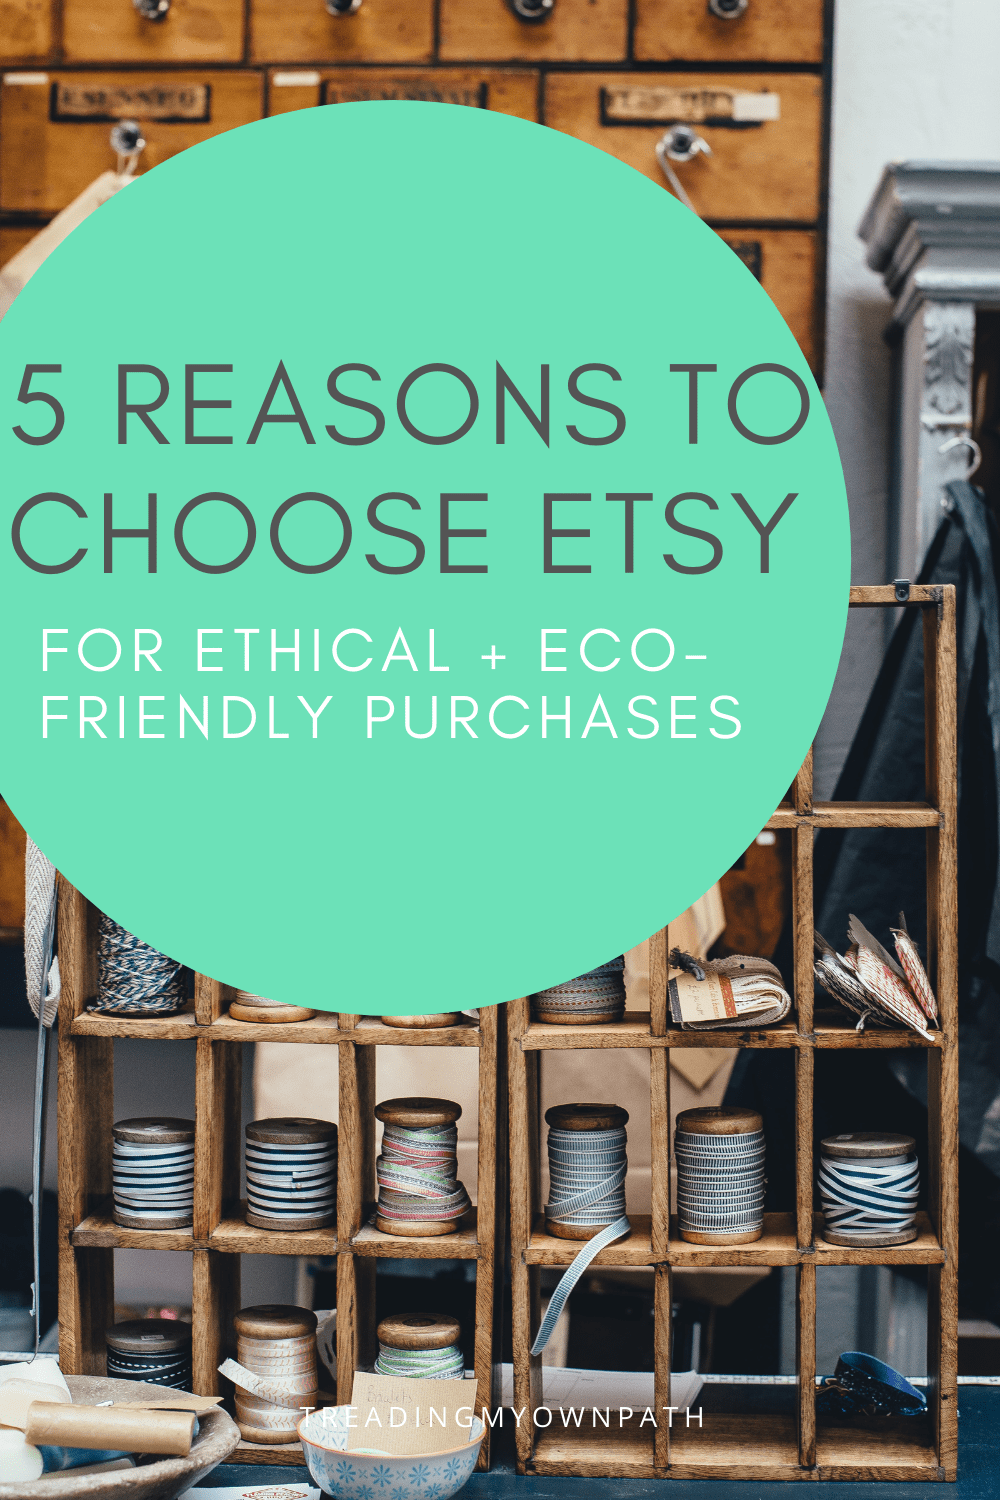 5 Reasons to Choose Etsy for Ethical + Eco-Friendly Purchases